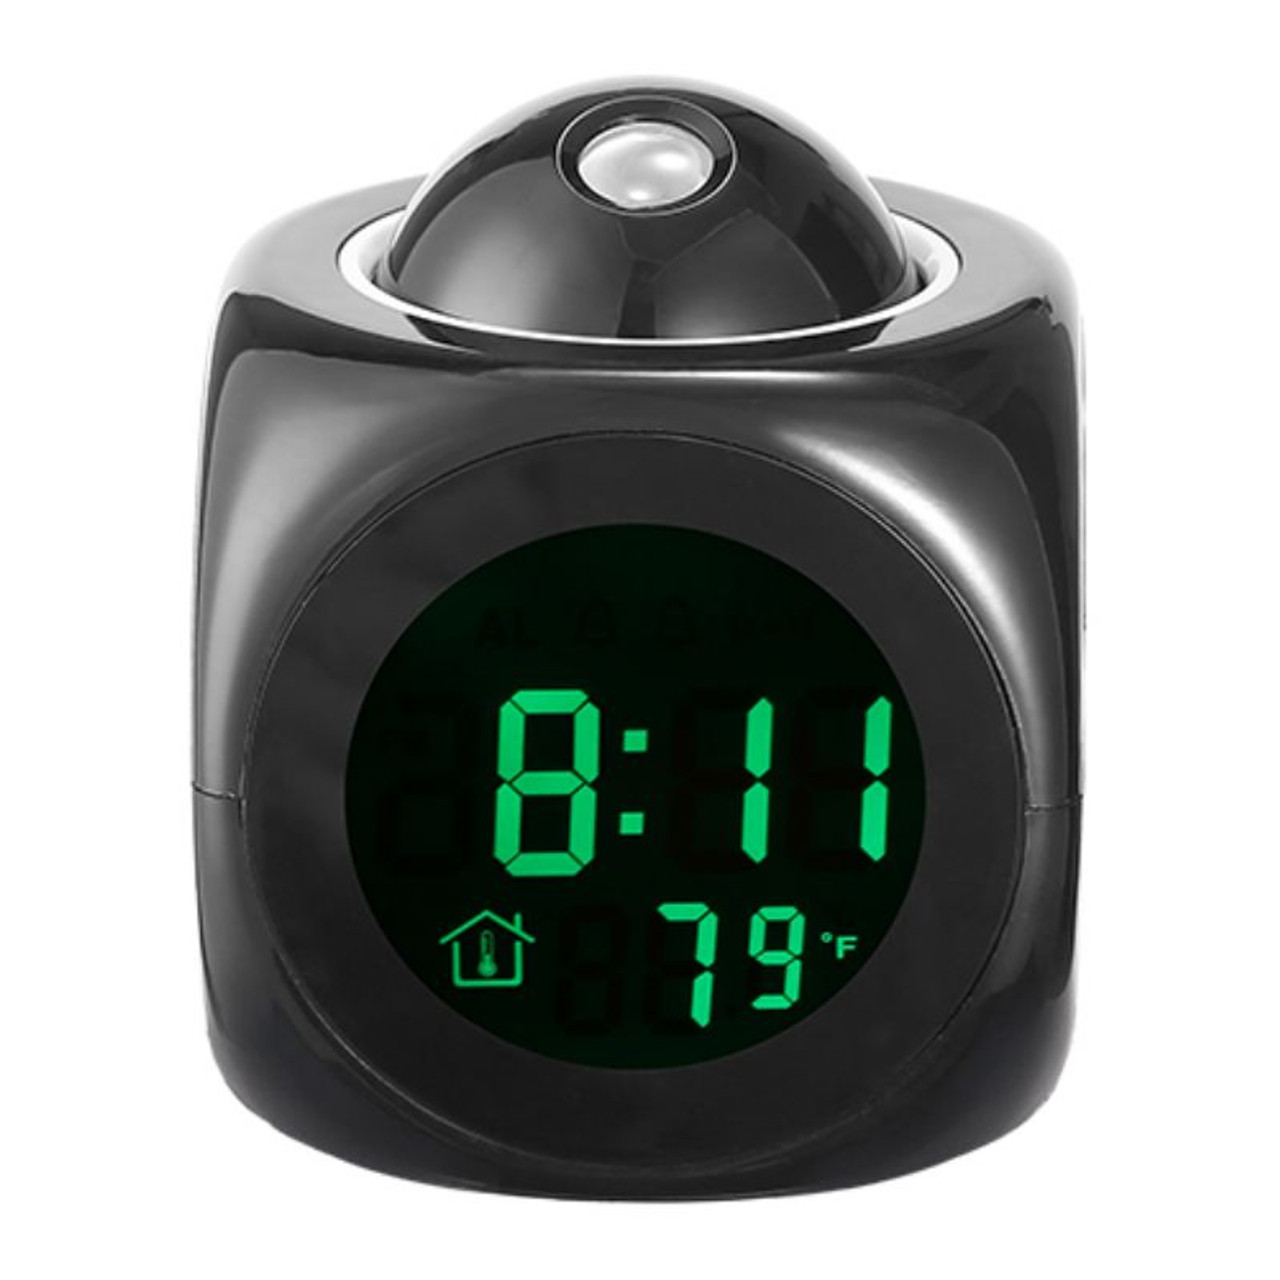 LCD Projection Alarm Clock, Battery Powered, Voice, Snooze, Temperature